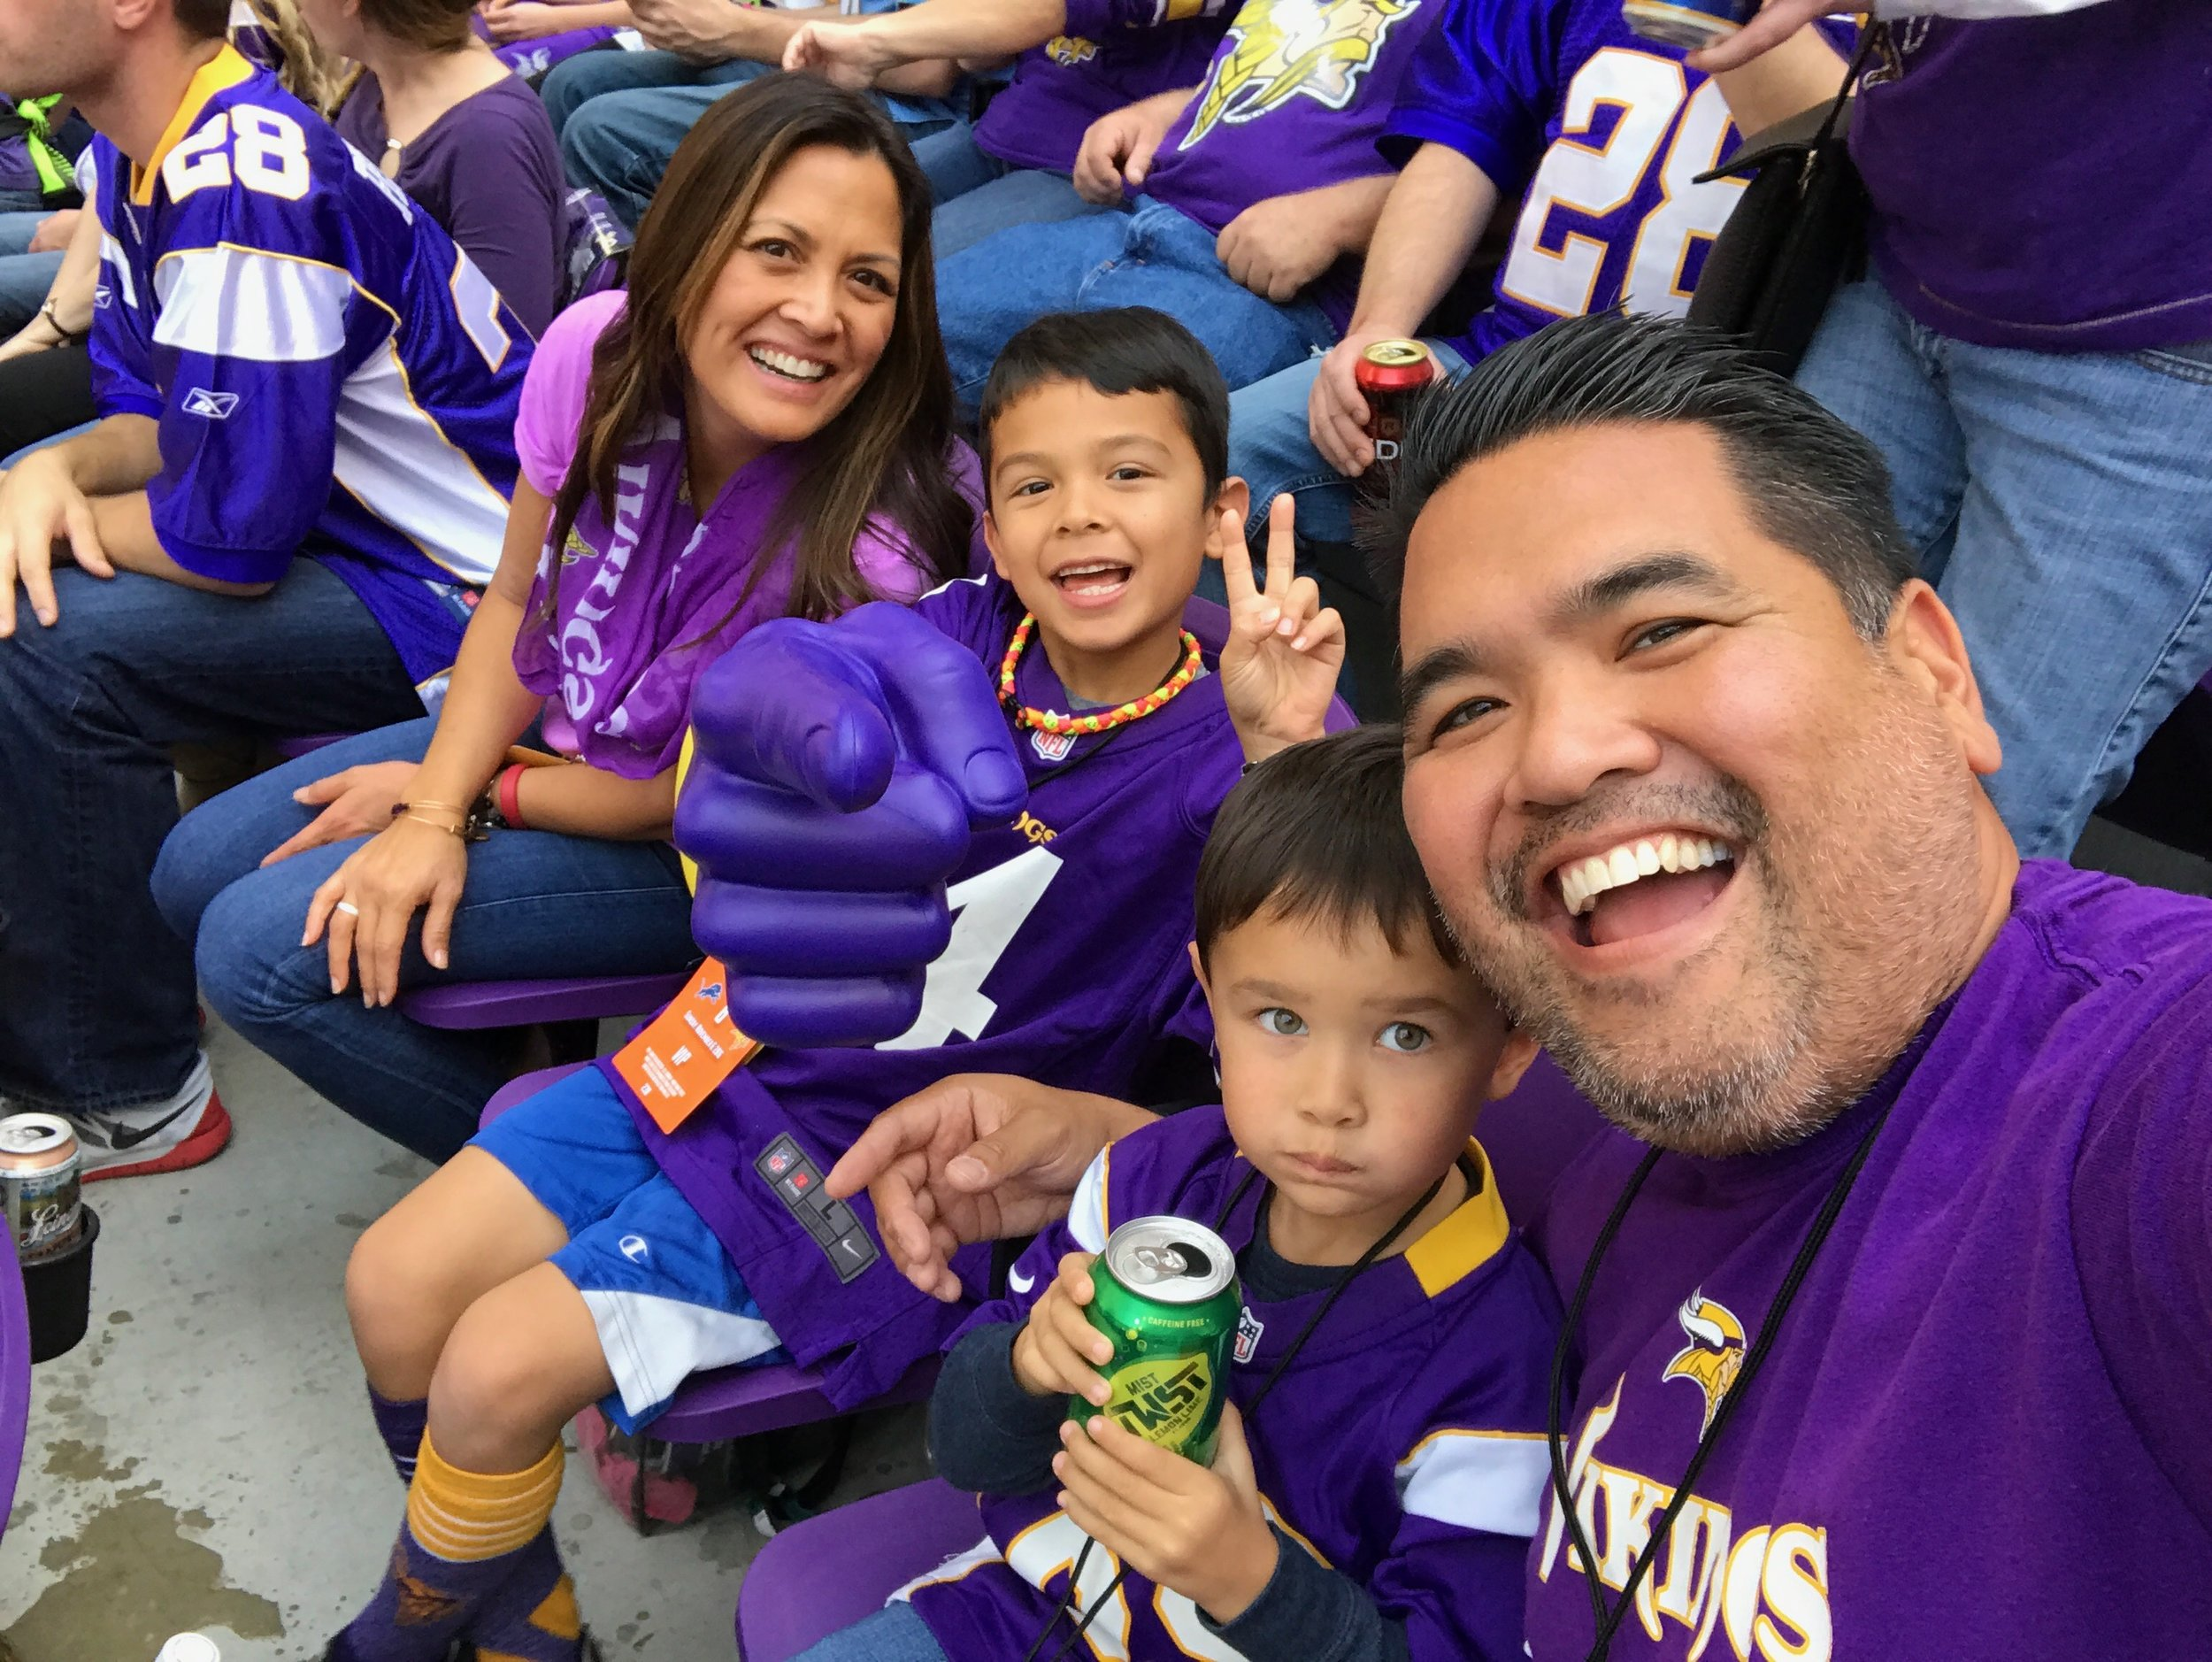 Instagram Message: My brother and I with our sons and a whole lot of purple. Consider this a head's up: Monday 4/10 is Sibling Day. Check the blog.